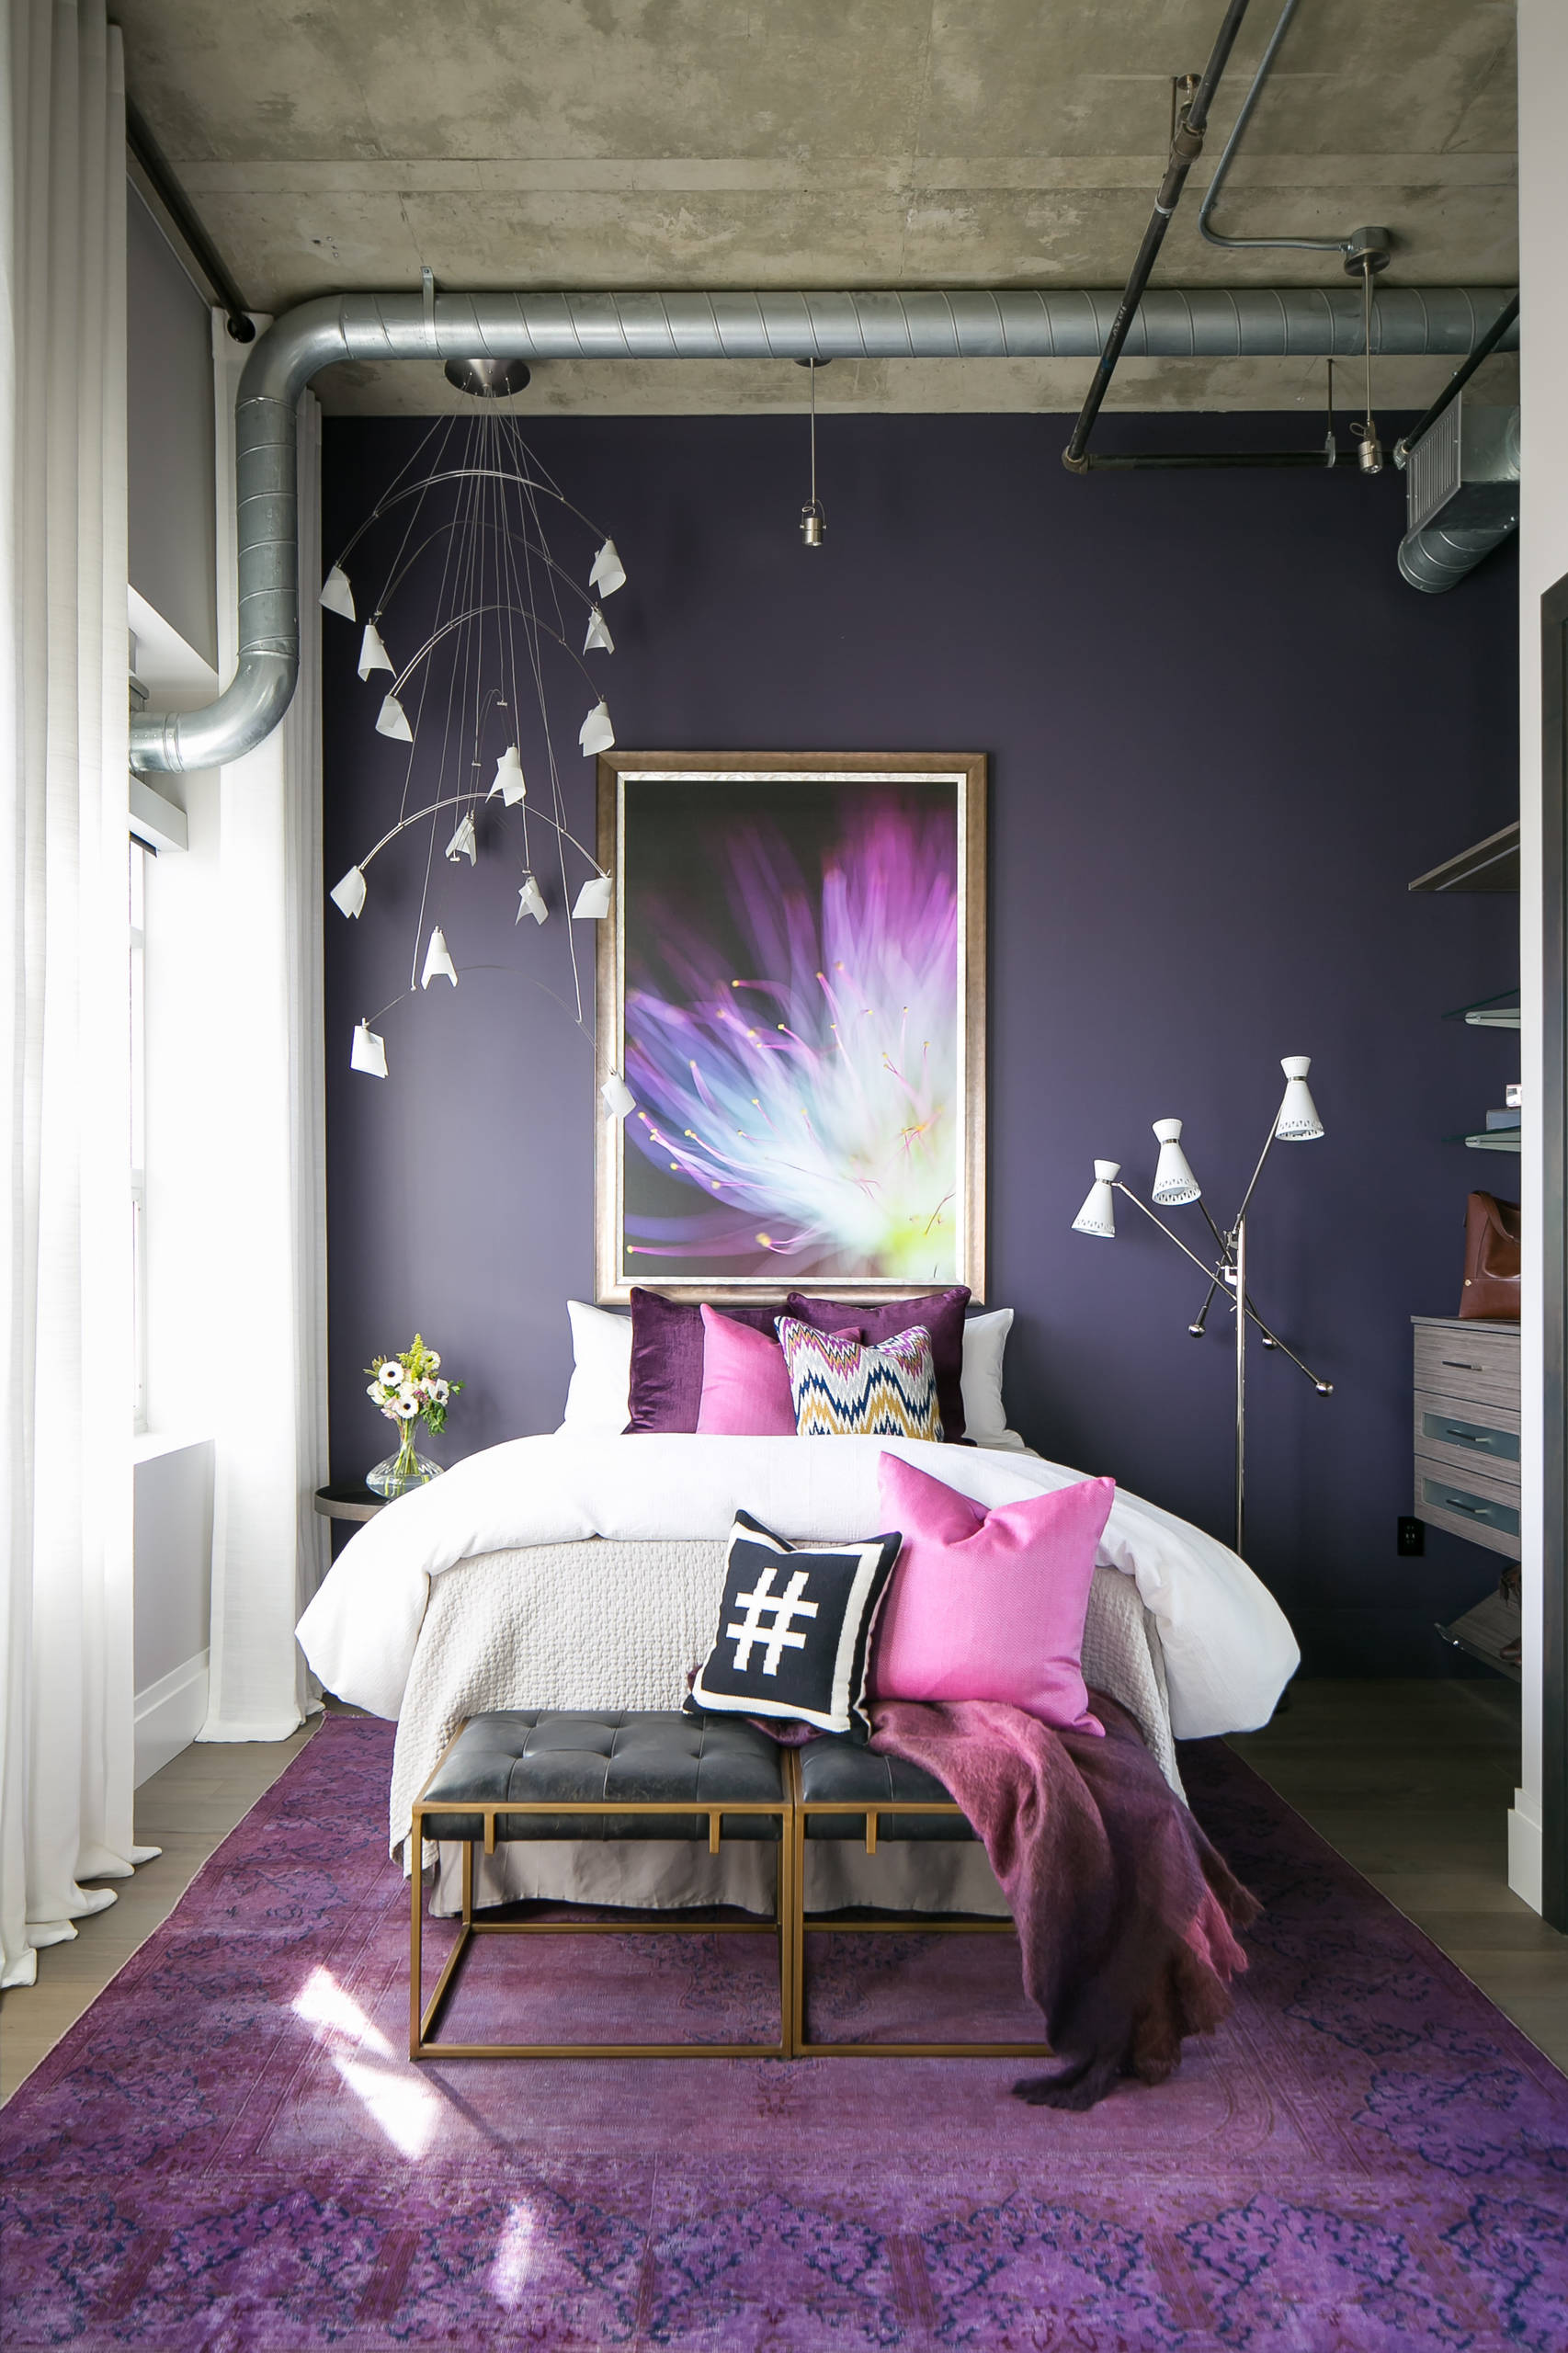 75 Beautiful Bedroom With Purple Walls Pictures Ideas September 2020 Houzz